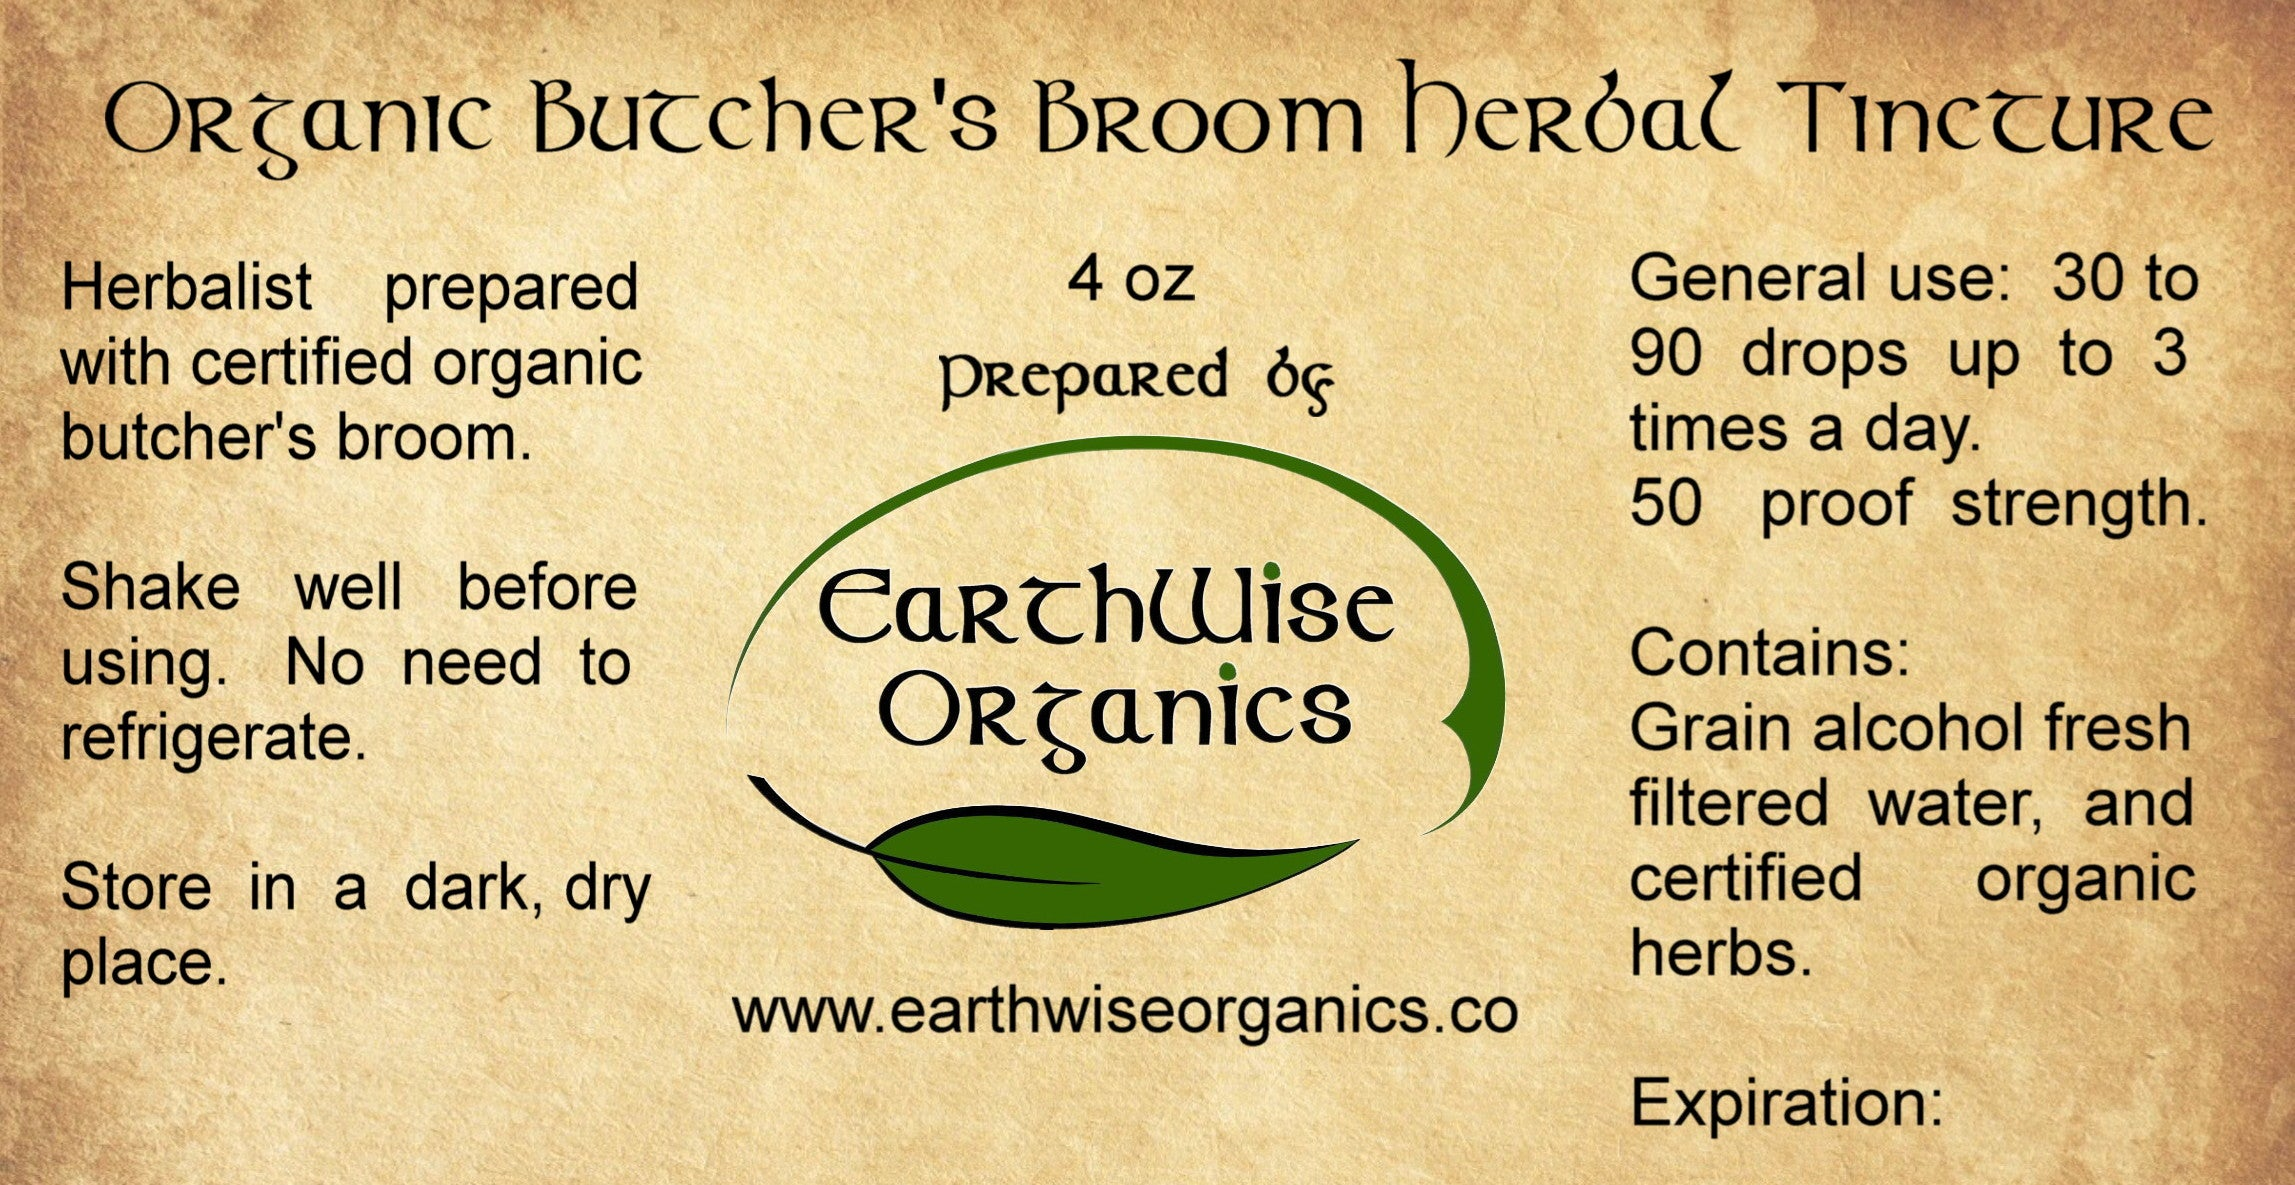 butcher's broom organic herbal tincture label